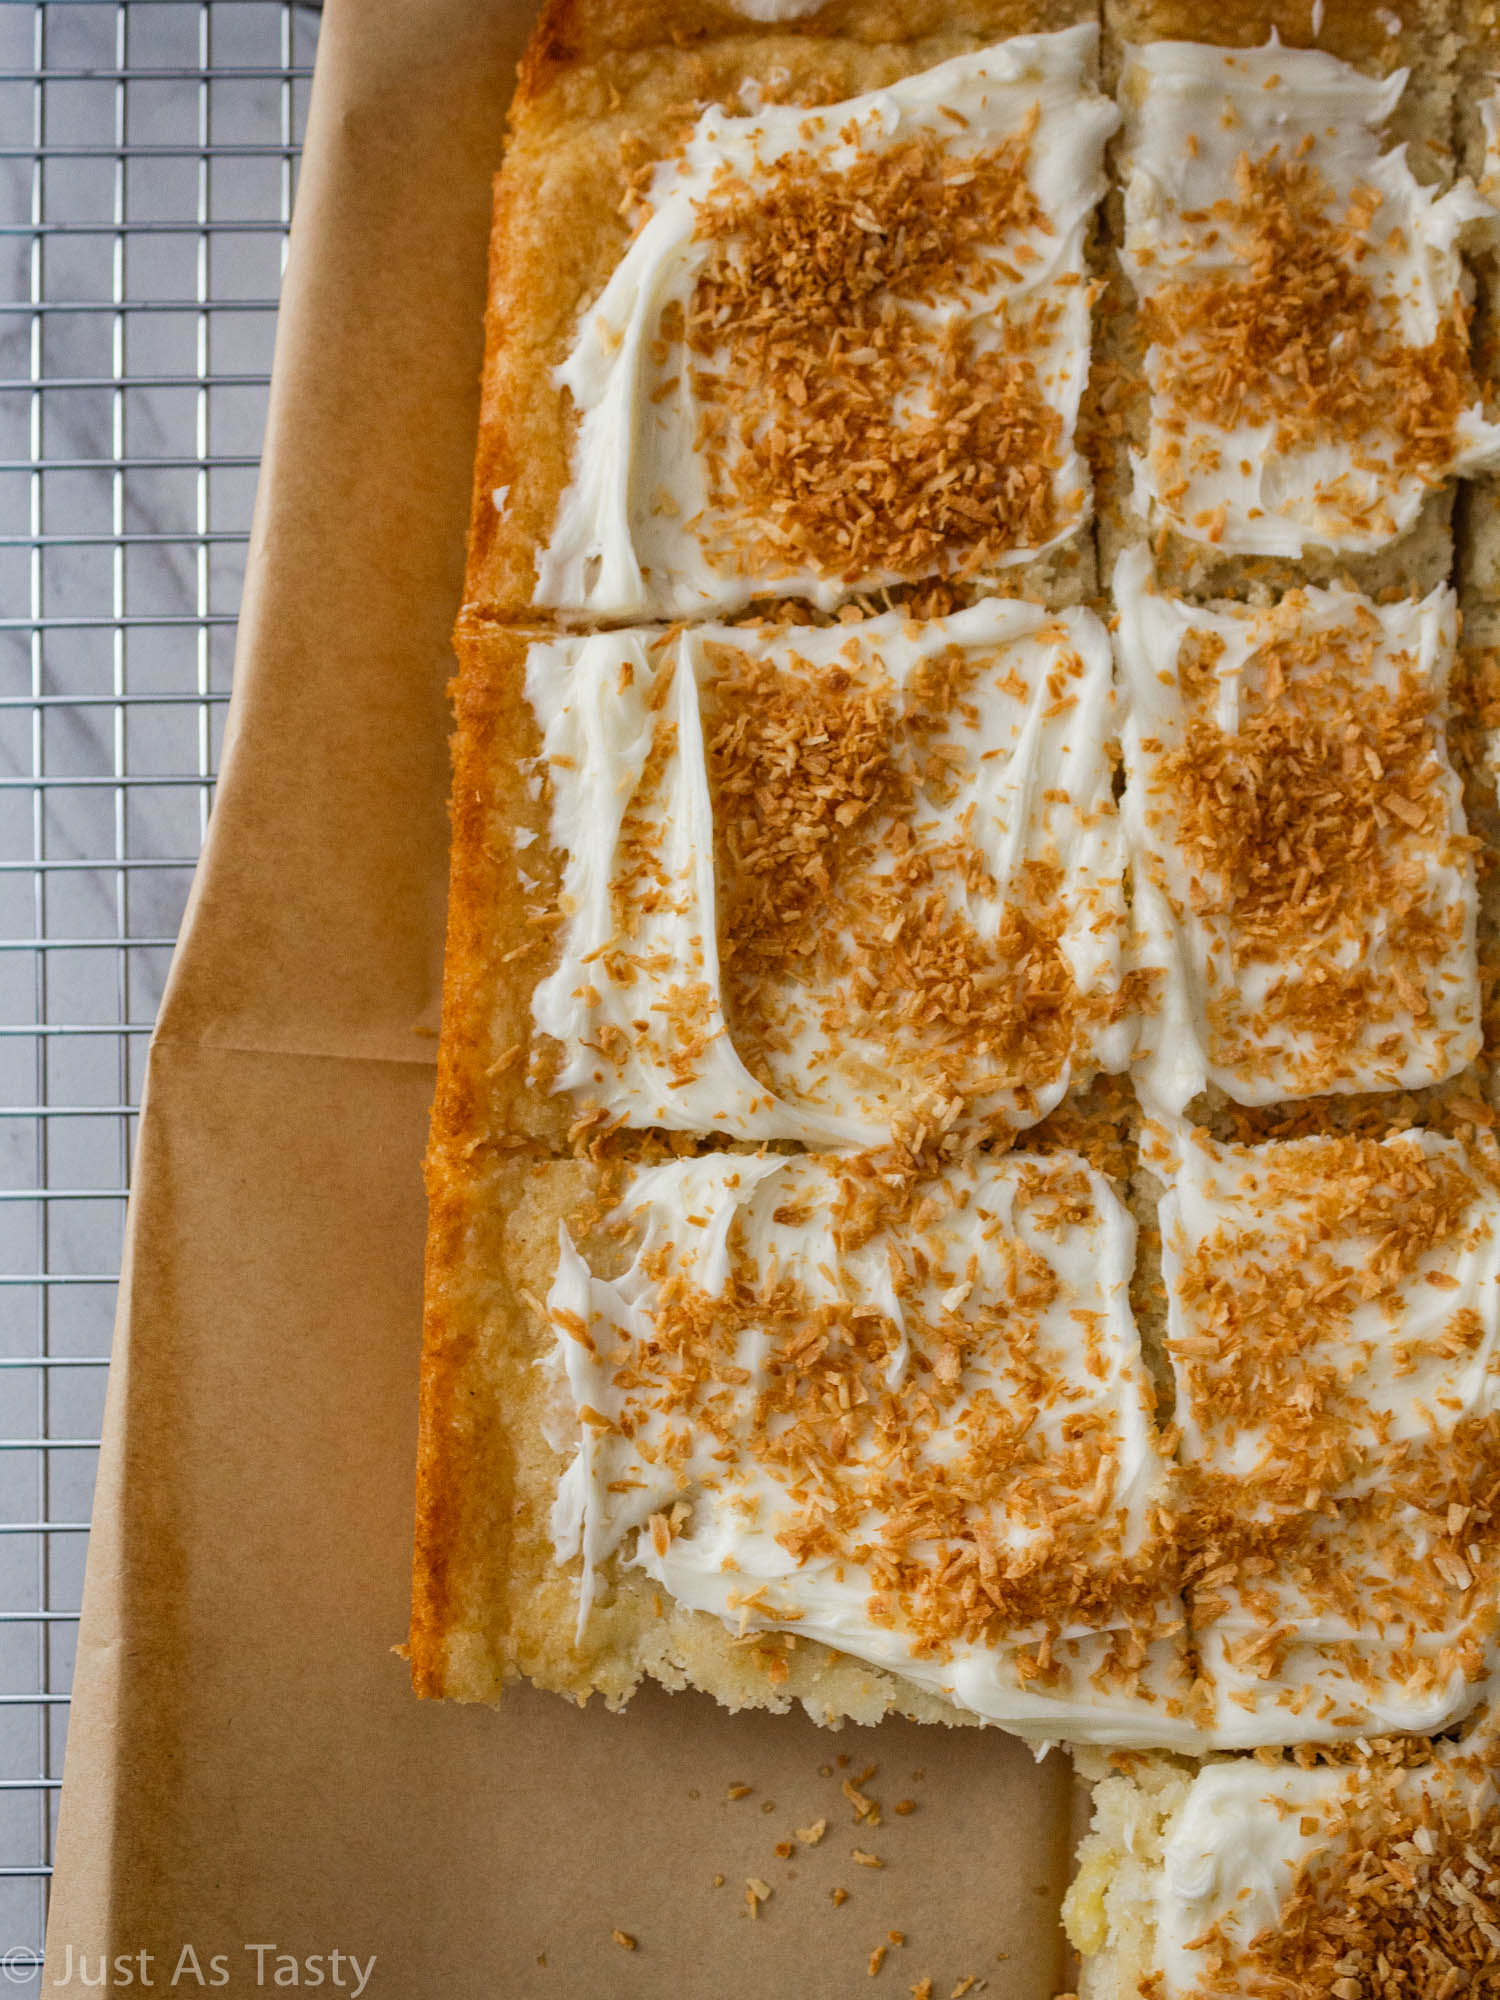 Frosted piña colada cake topped with toasted coconut flakes.